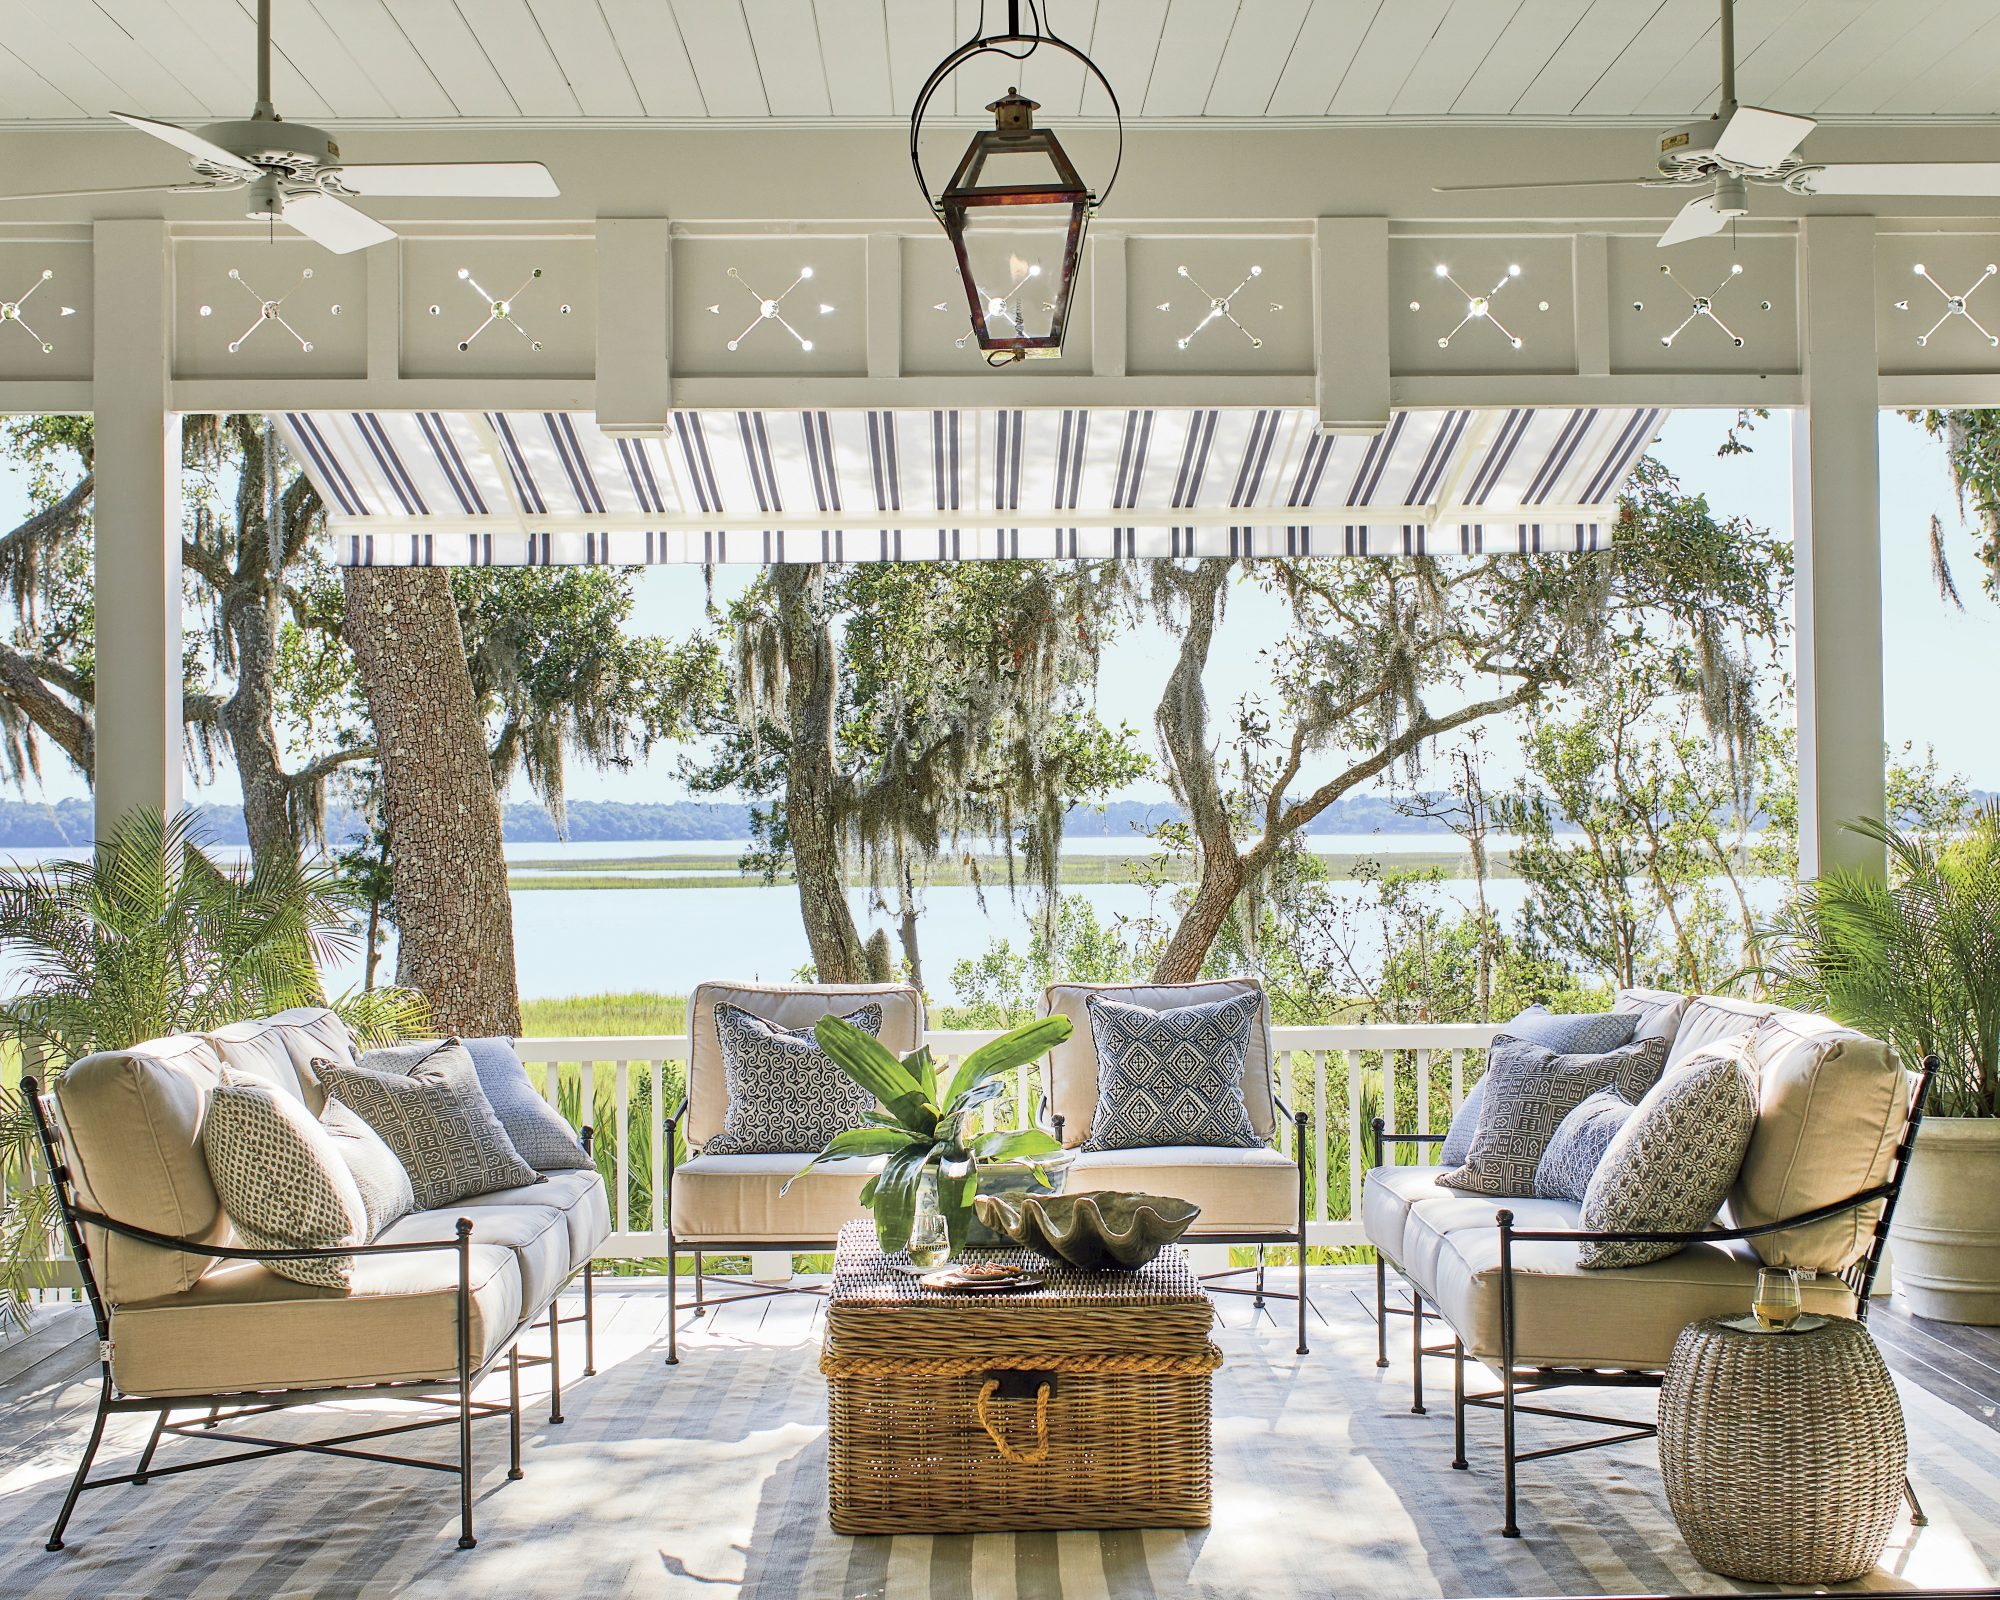 The 9 Best Outdoor Ceiling Fans Of 2021, What Is The Best Outdoor Ceiling Fan For Salt Air